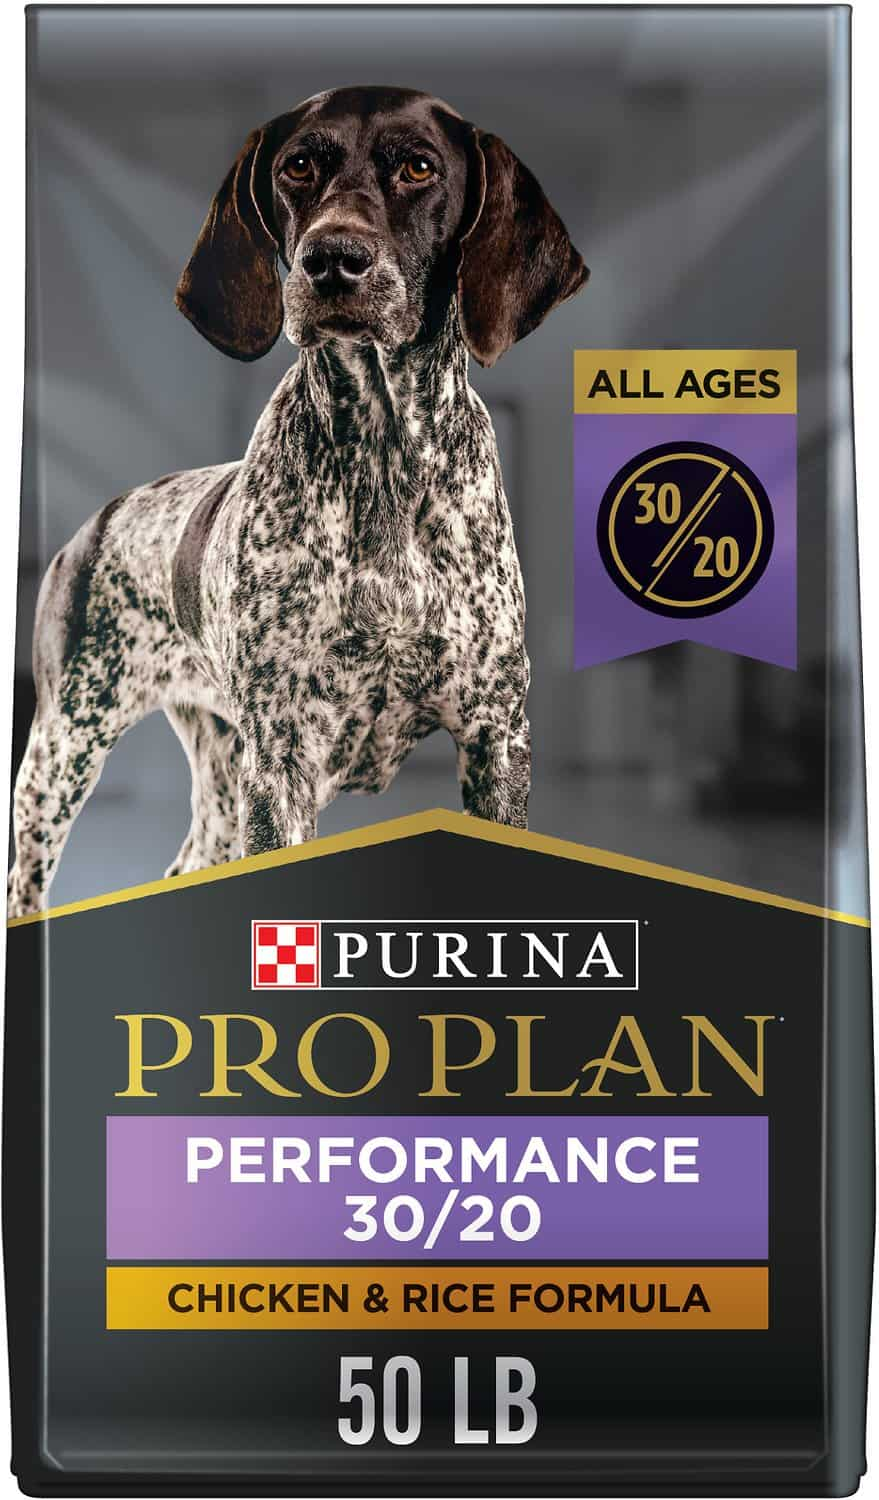 [year] Purina Pro Plan Dog Food Review: Advanced Nutrition for Dogs 10